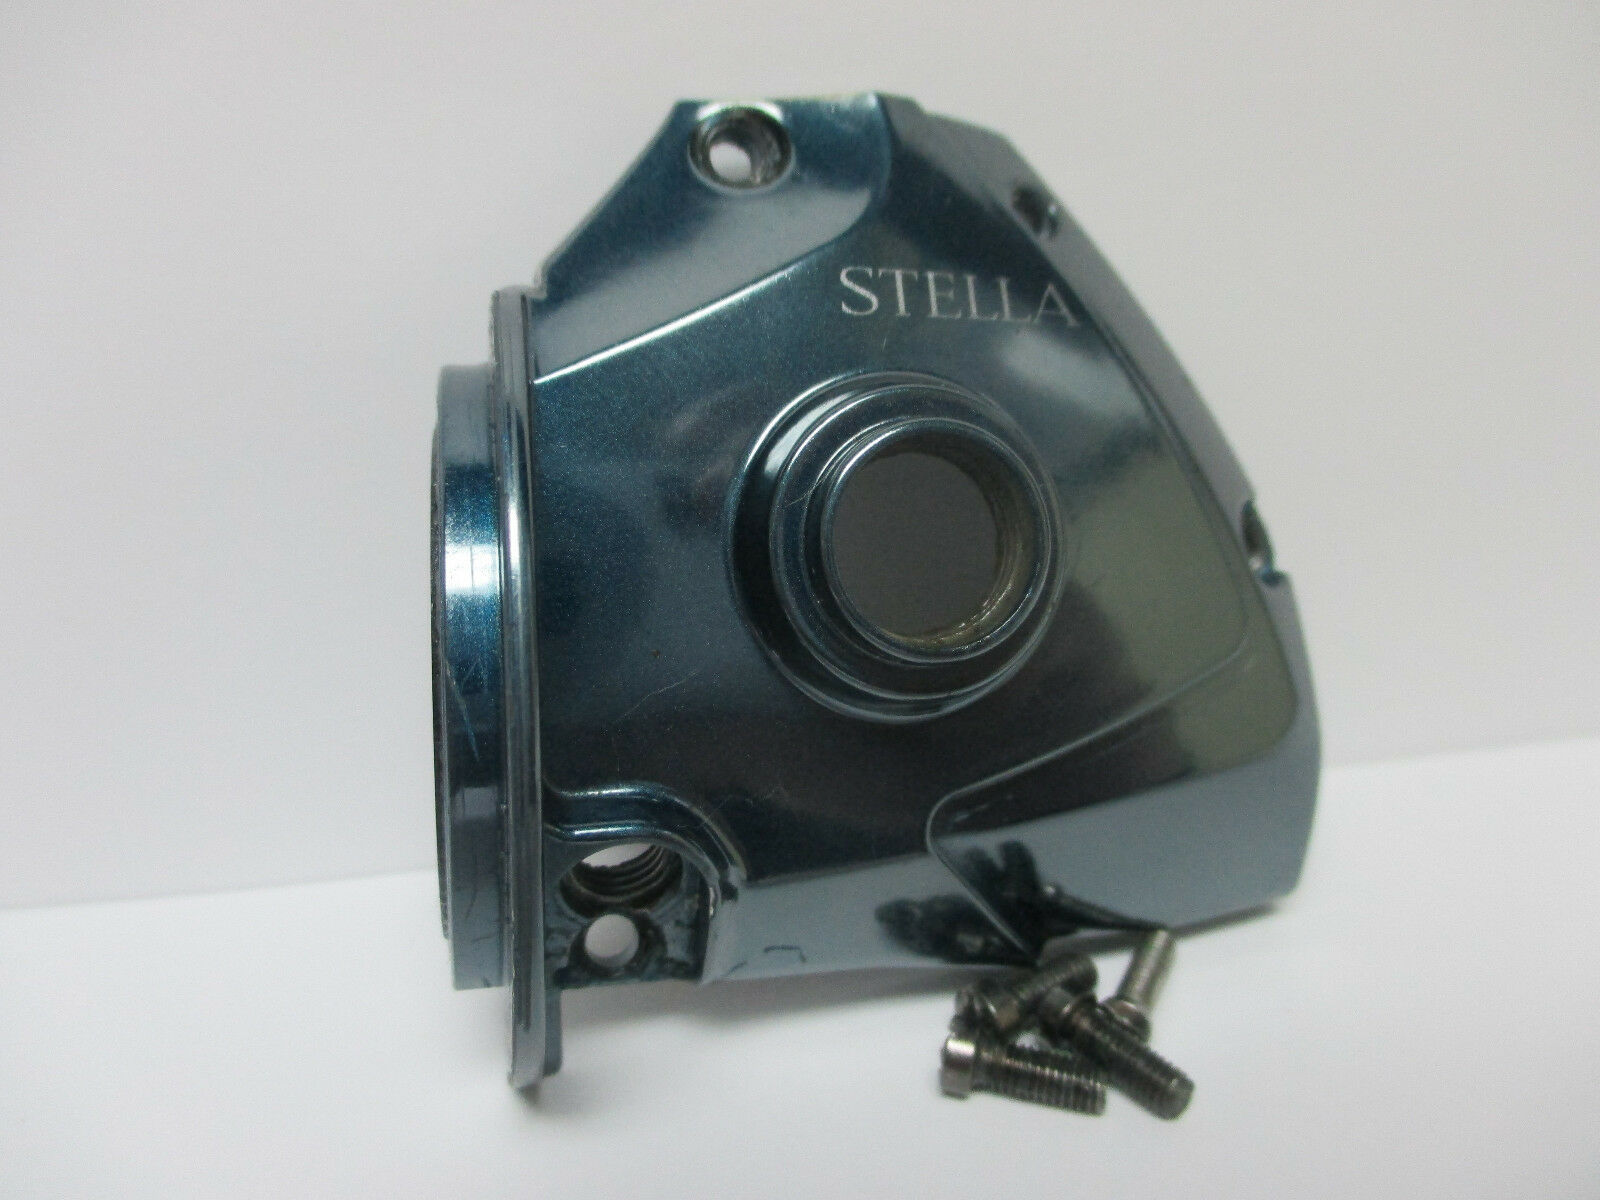 USED SHIMANO SPINNING REEL PART - Stella 6000FA - Body Side Cover  A